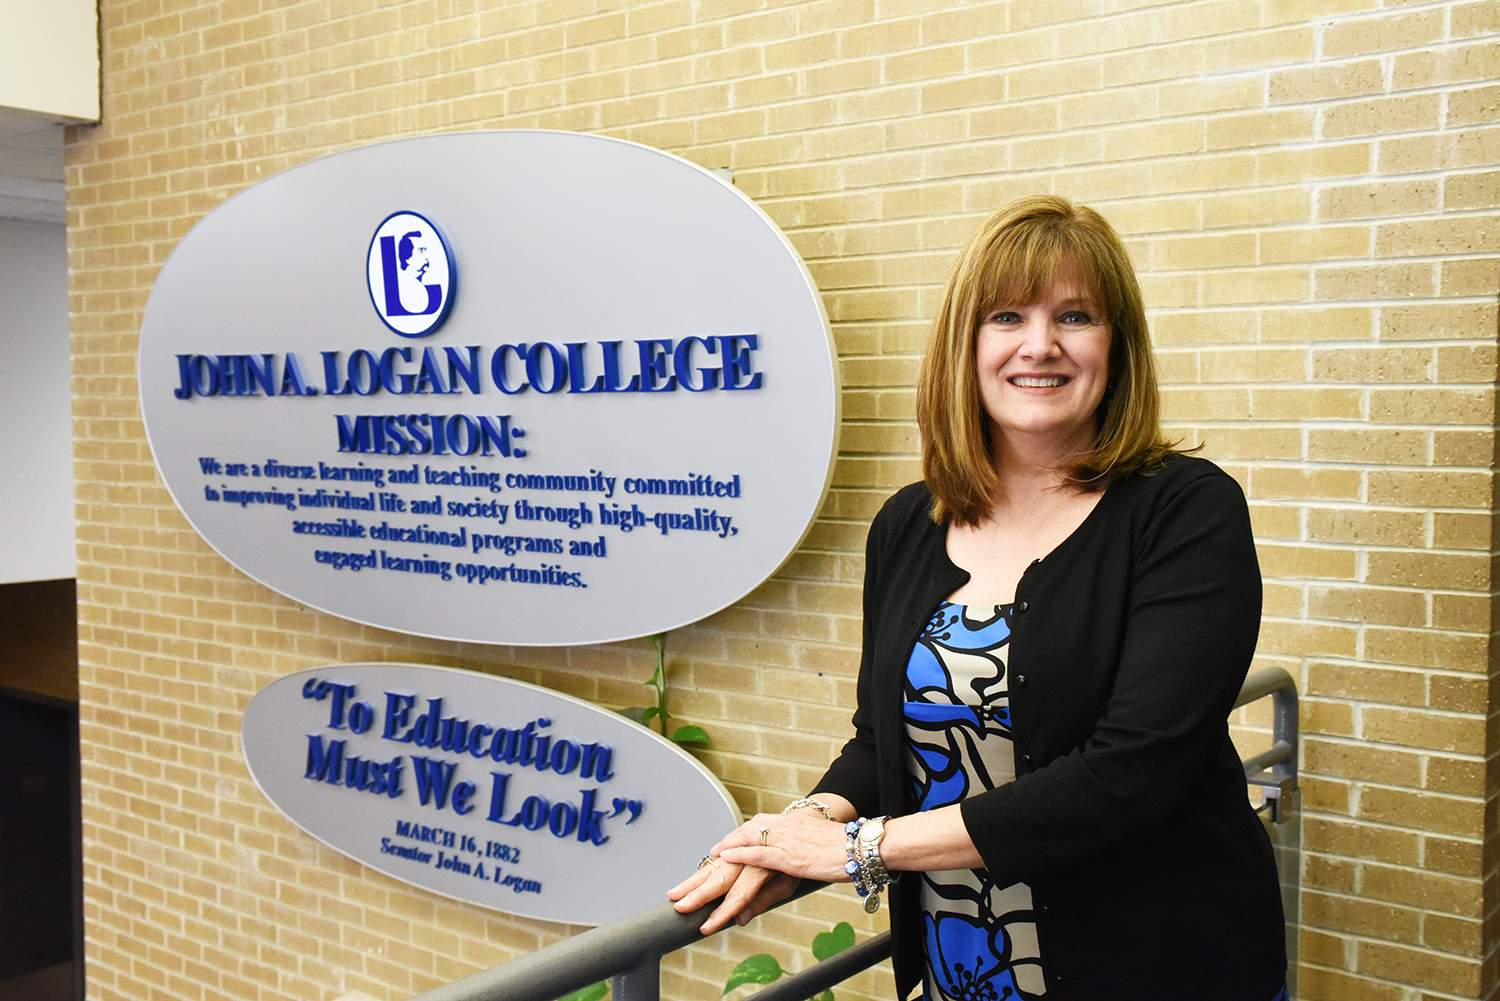 Lisa Hudgens, director of Career Services at John A. Logan College, says this year's job fair at John A. Logan College is the largest in its 22-year history.